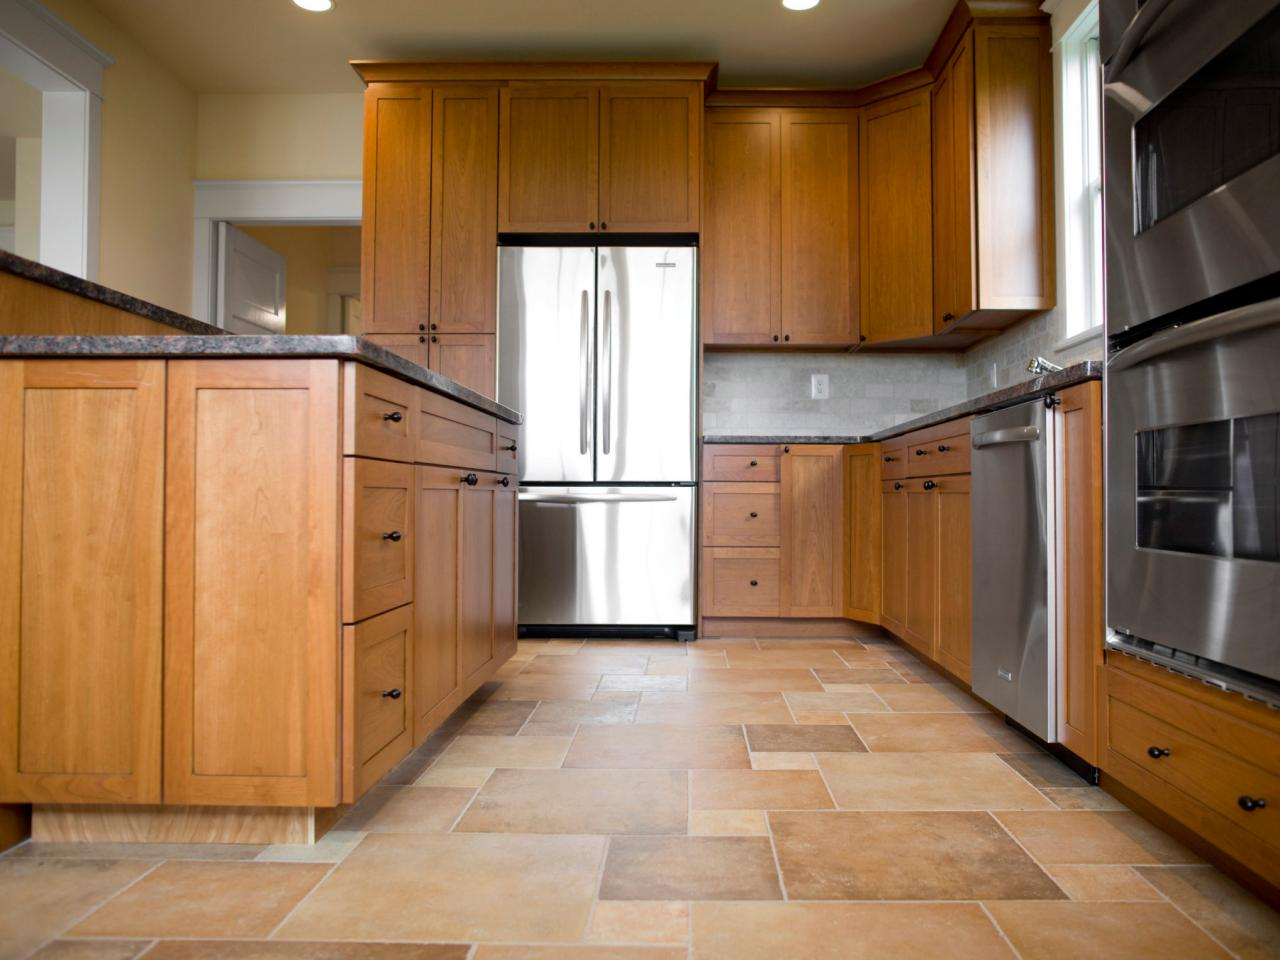 Whats the best kitchen floor tile diy related to kitchen floors floor tile dailygadgetfo Image collections